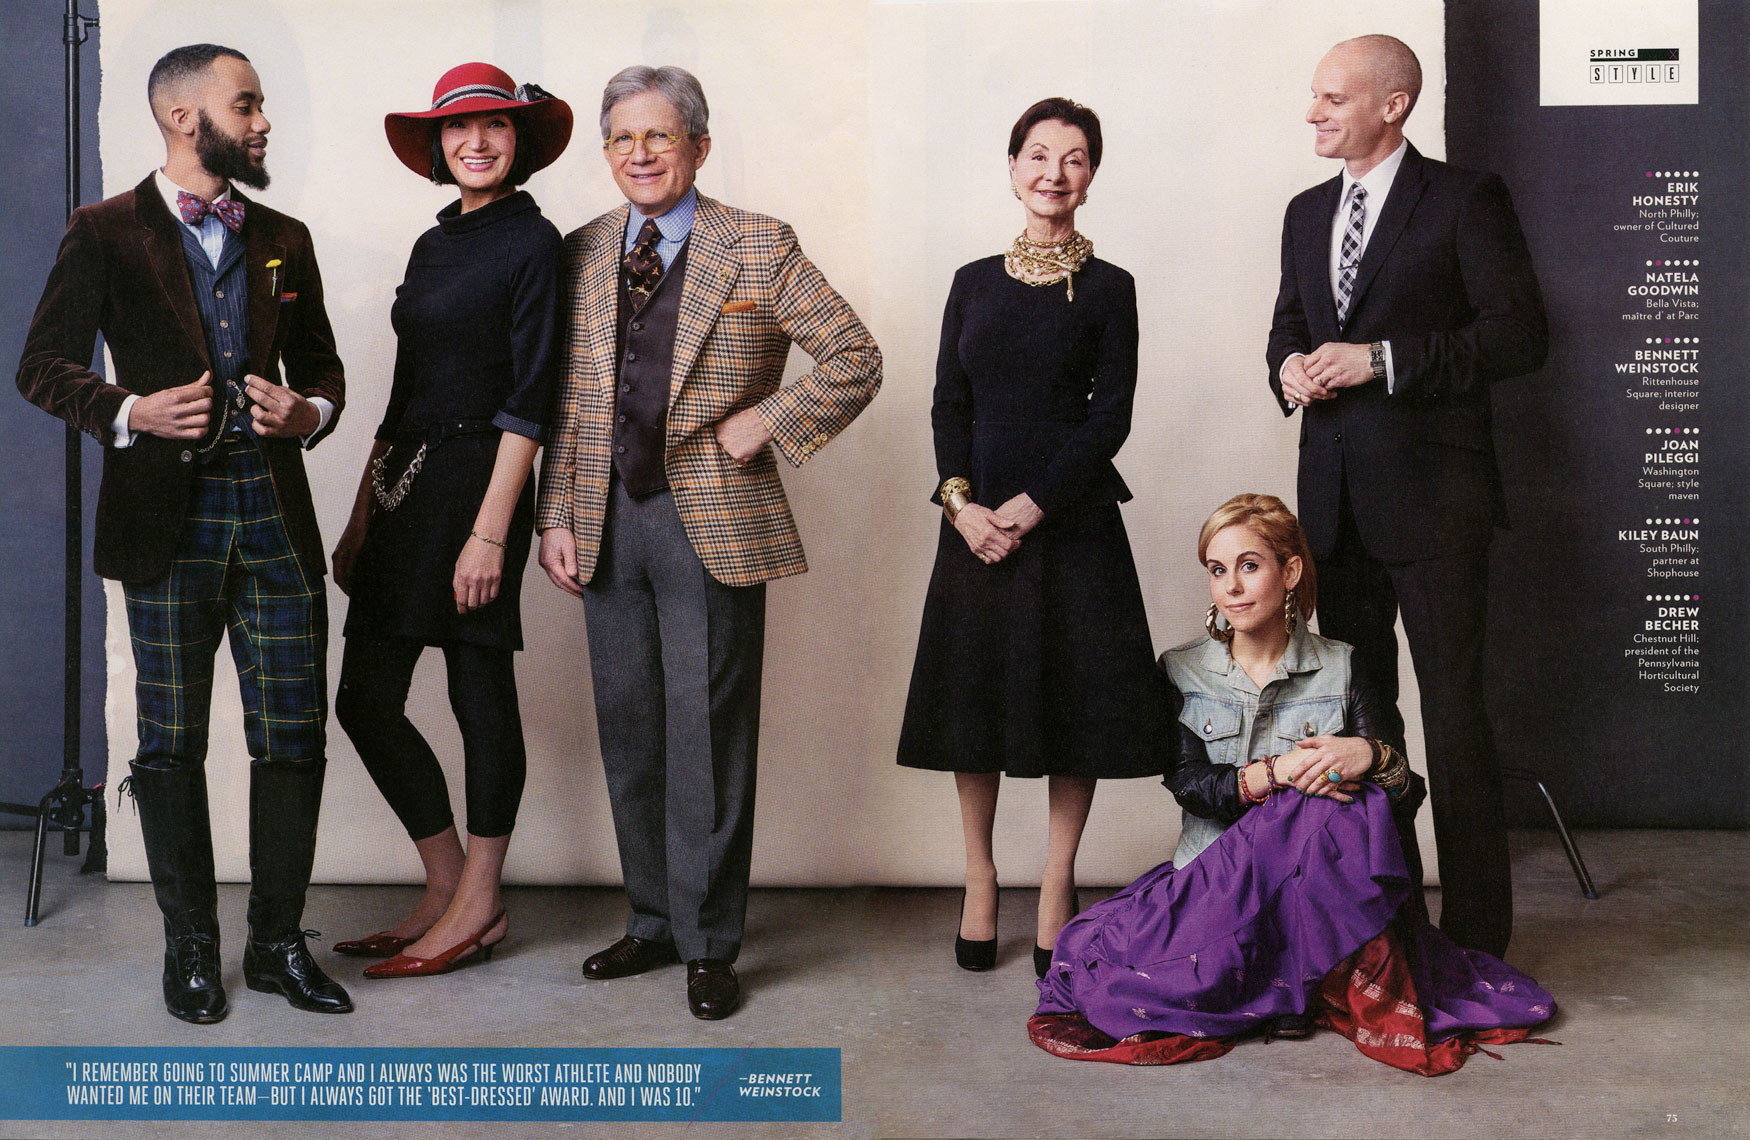 Philadelphia Magazine: FASHION: The Best Dressed List: Erik Honesty, Natela Goodwin, Bennet Weinstock, Joan Pileggi, Kiley Baun, Drew Becher.  March 2013 issue